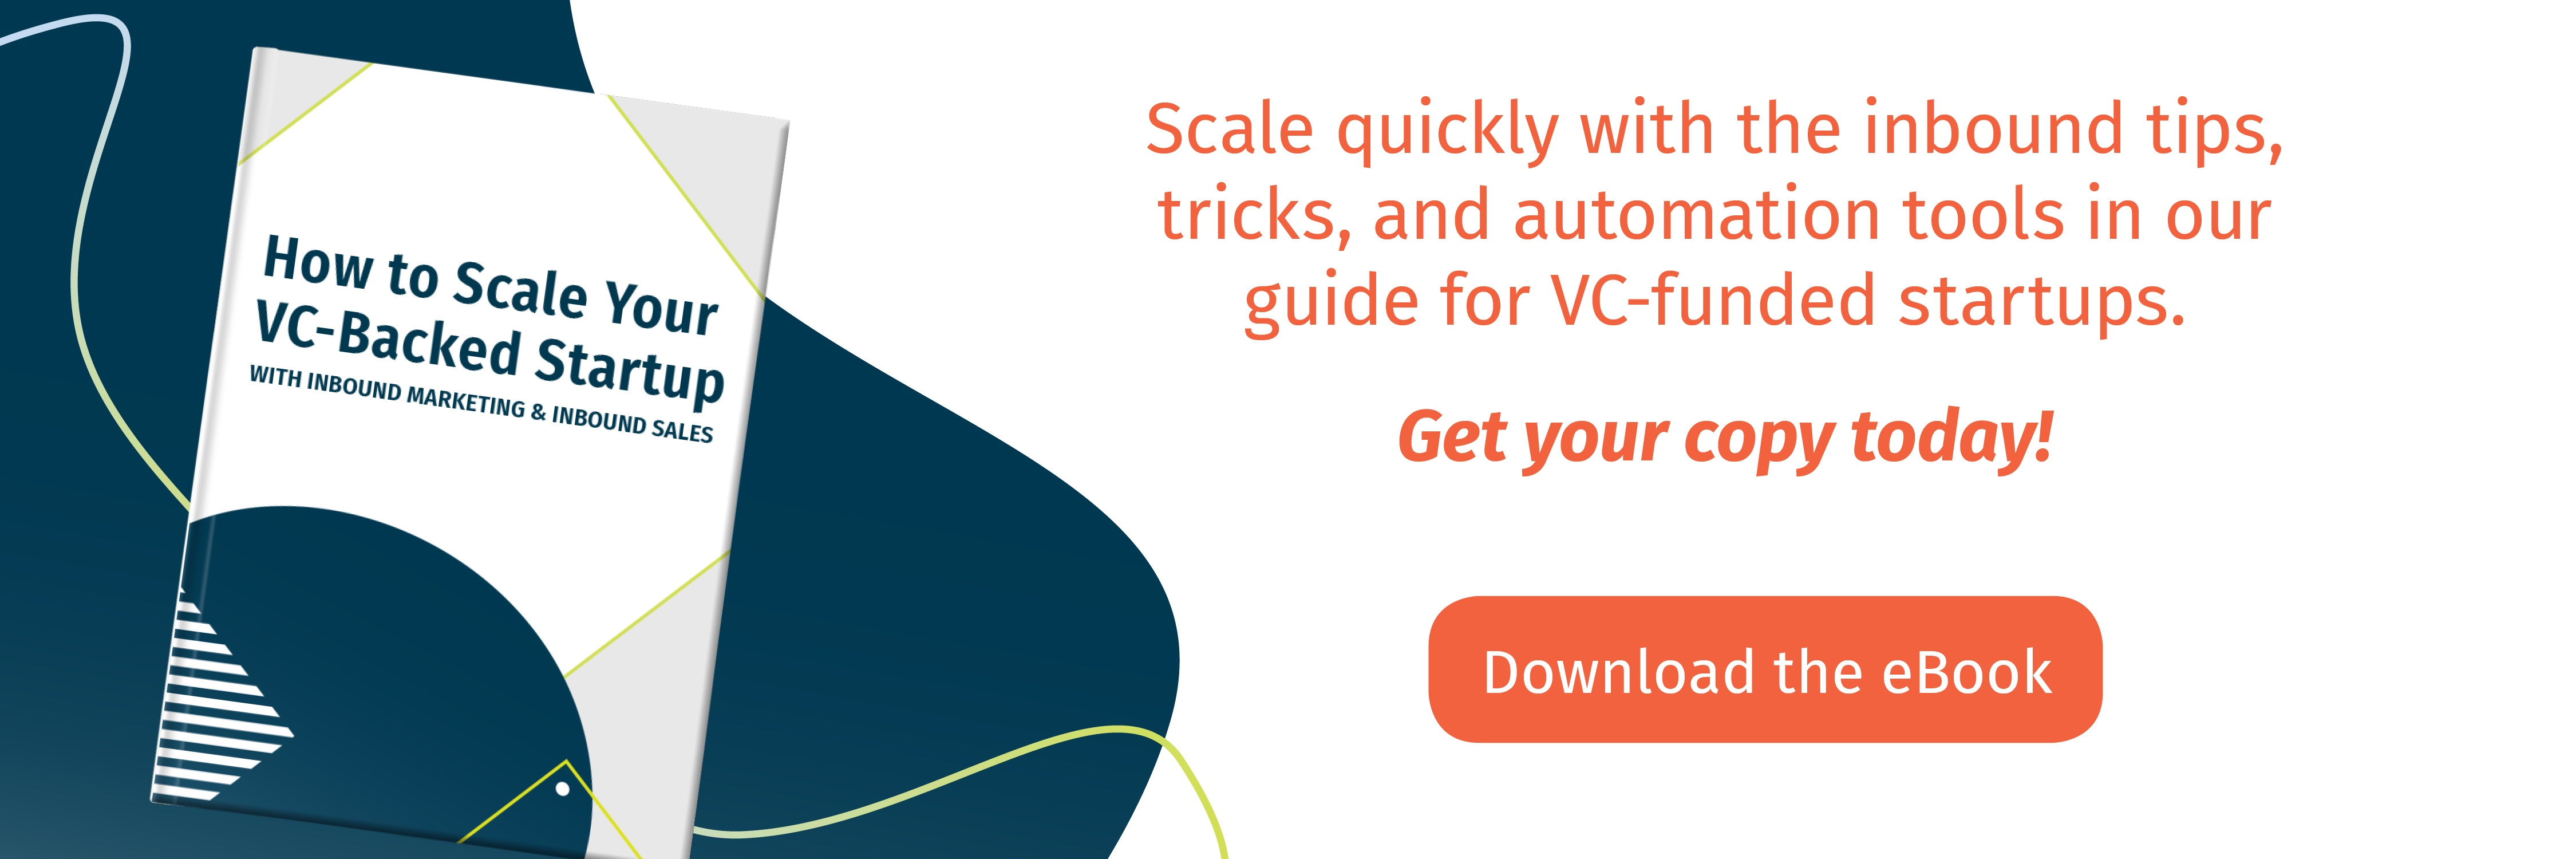 How To Scale Your VC Backed Startup